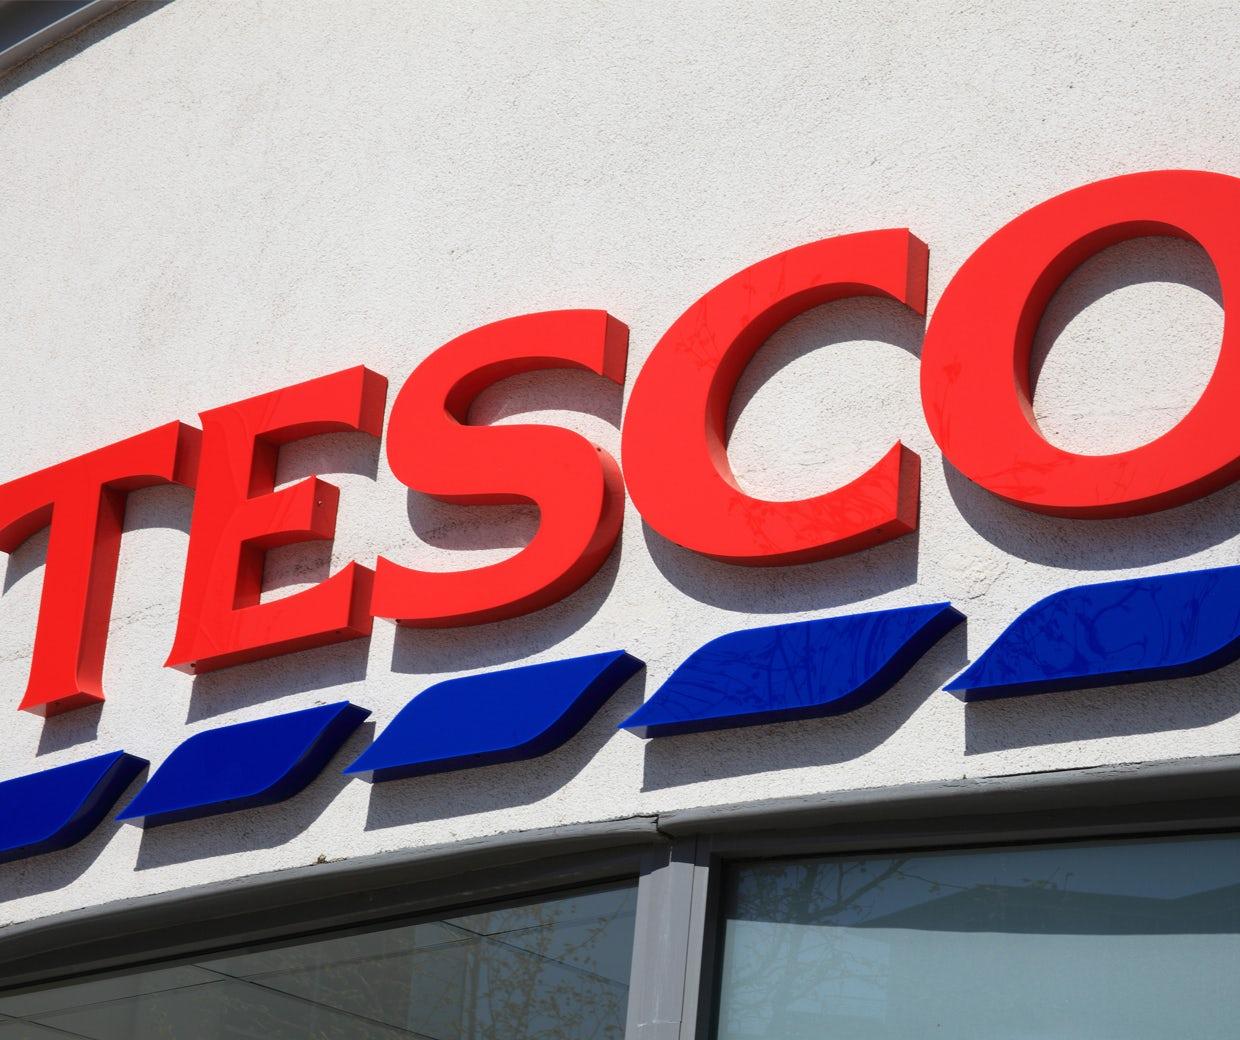 Tesco, Heineken, Dollar Shave Club: 5 things that mattered this week and why